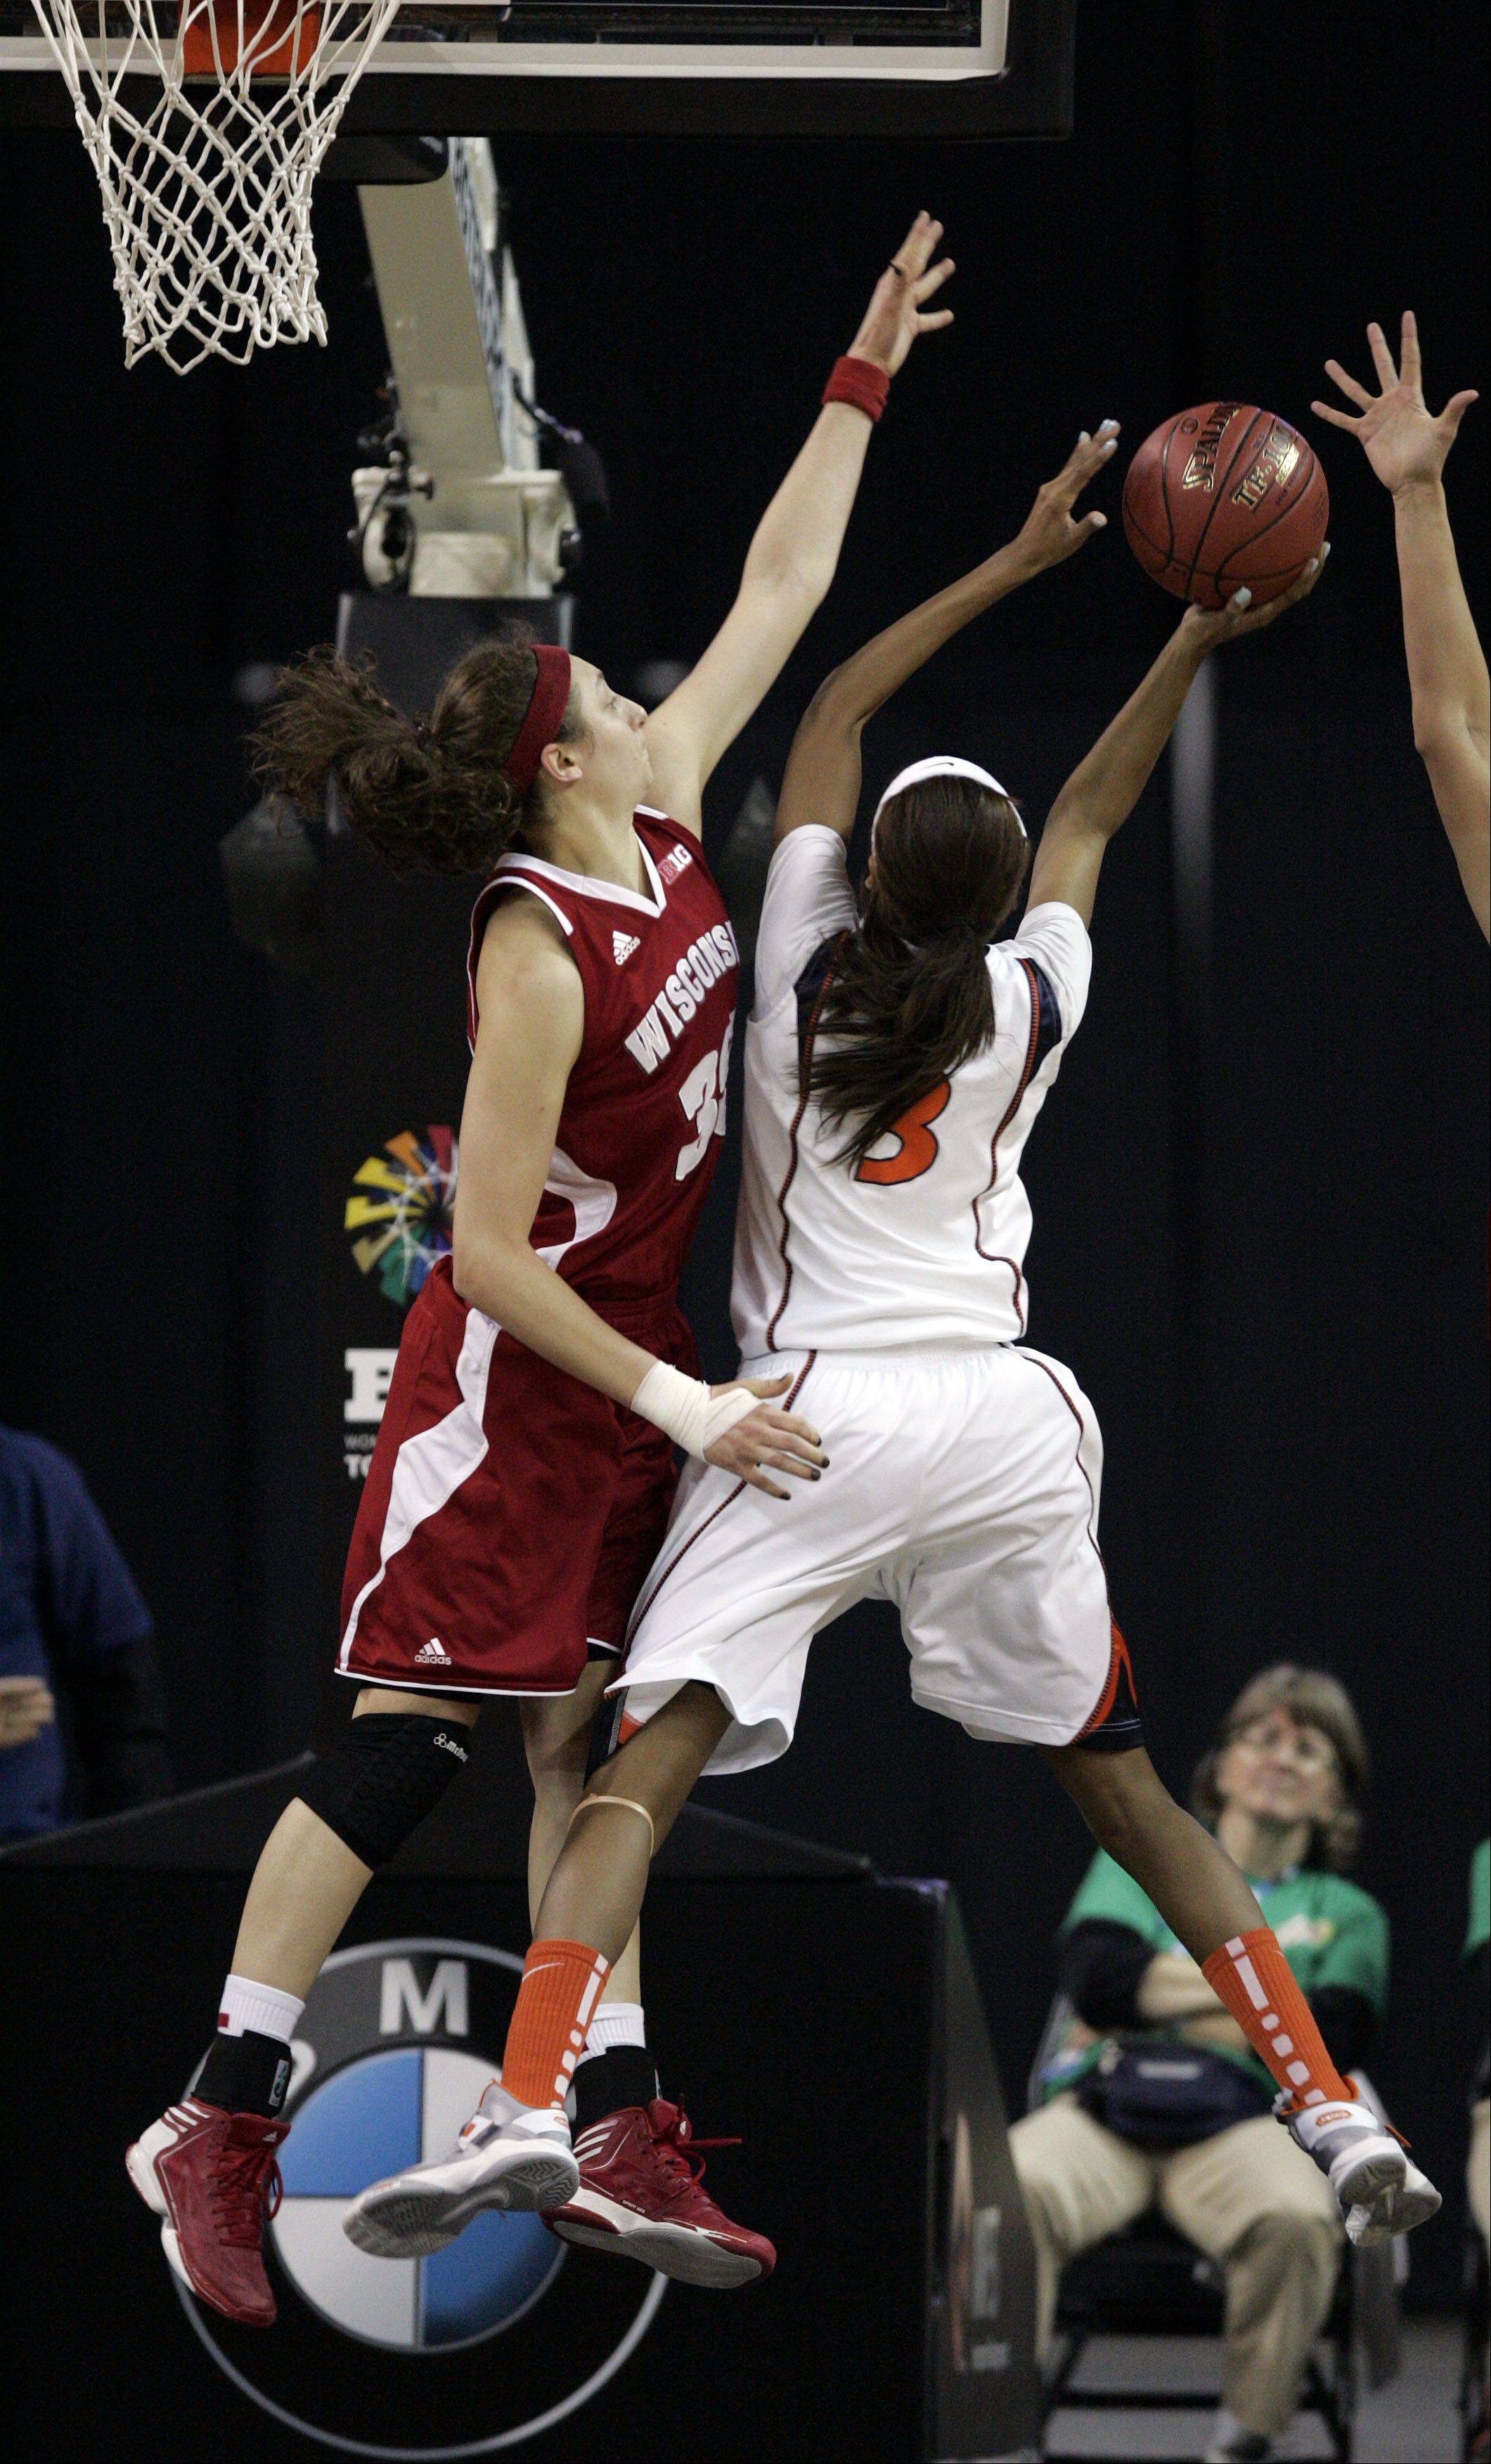 Jacki Gulczynski of Wisconsin pressures Illini guard/forward Taylor Tuck during action Thursday at the Big Ten Women's Basketball Tournament at the Sears Centre in Hoffman Estates. Wisconsin advanced with a 58-57 win.